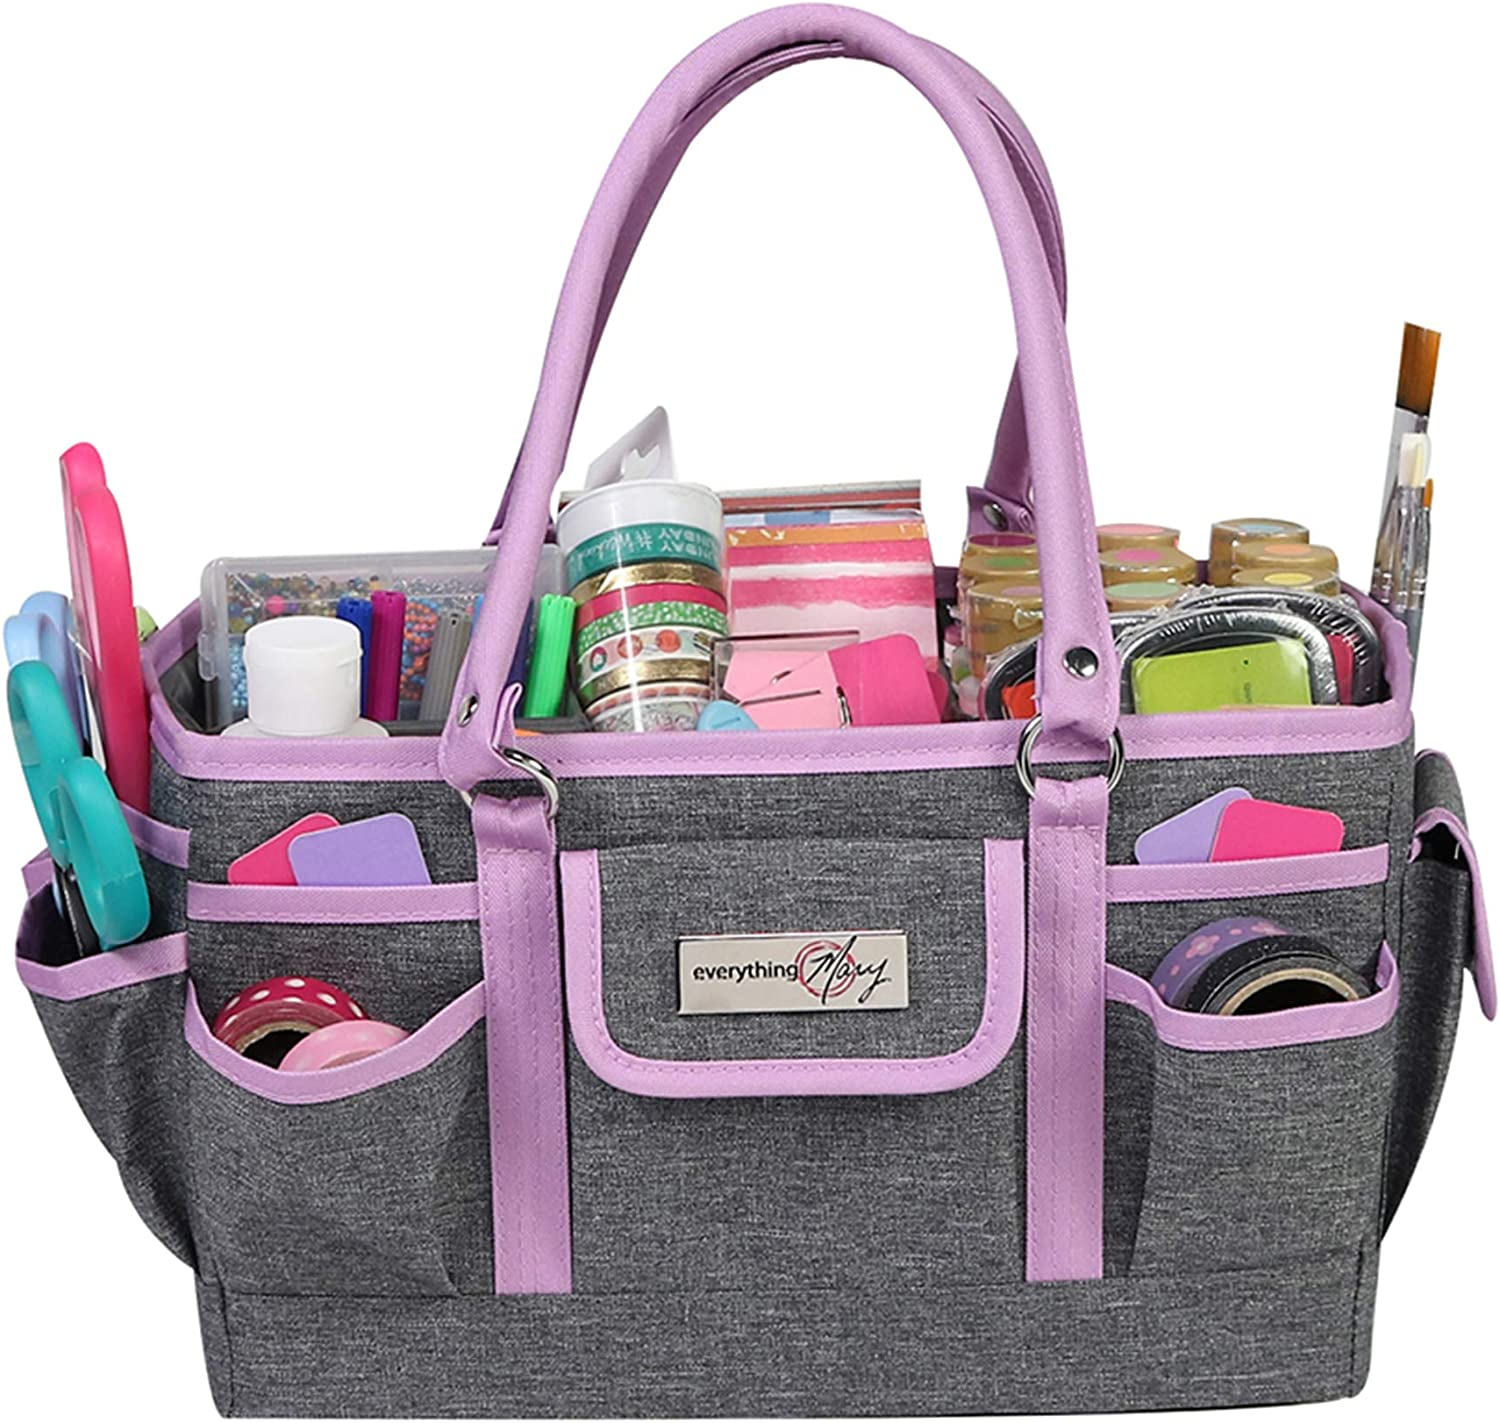 Crafters Caddy Purse carry all bag Tote